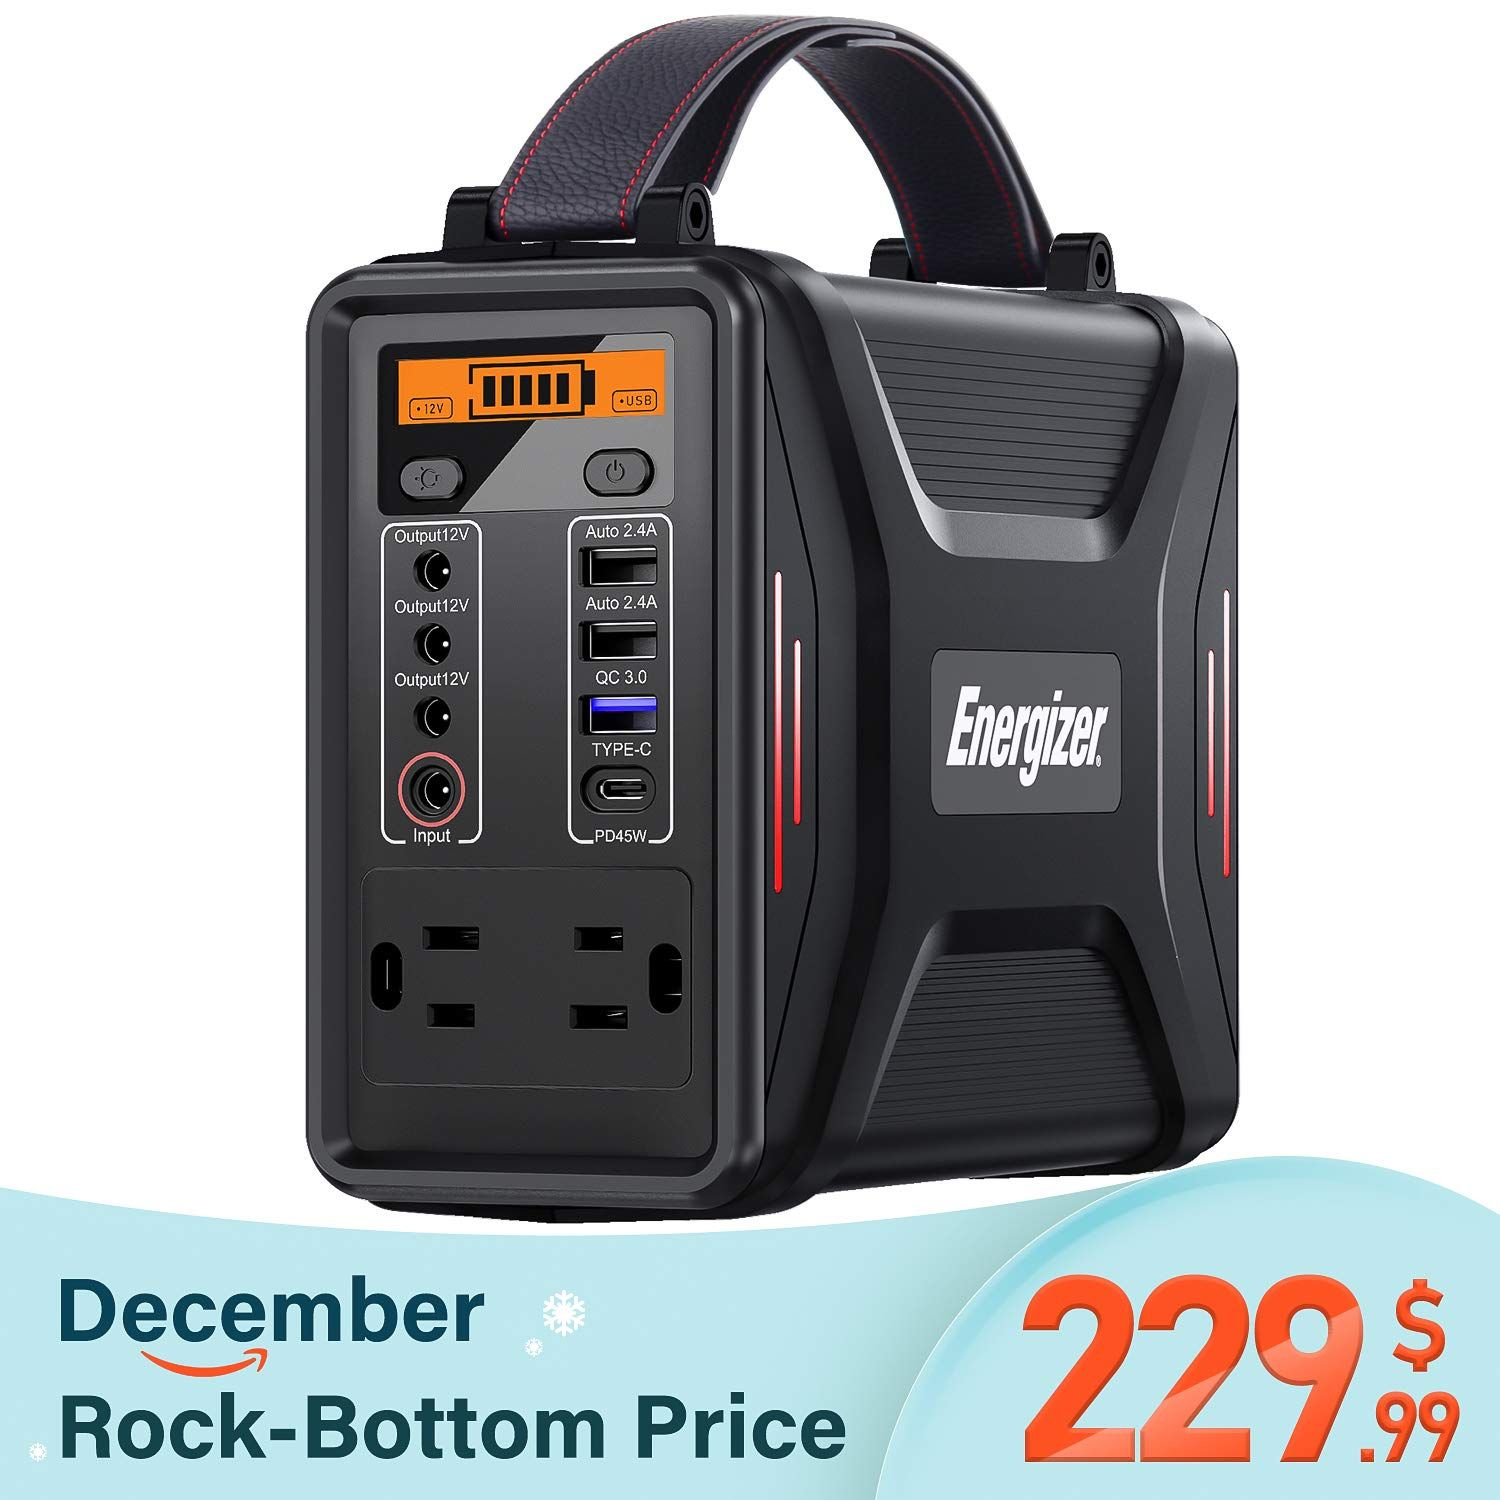 Energizer Portable Power Station Pd 45w Type C Fast Charging Power Supply 240wh 75000mah 110v 200w Portable Power Camping Power Power Station